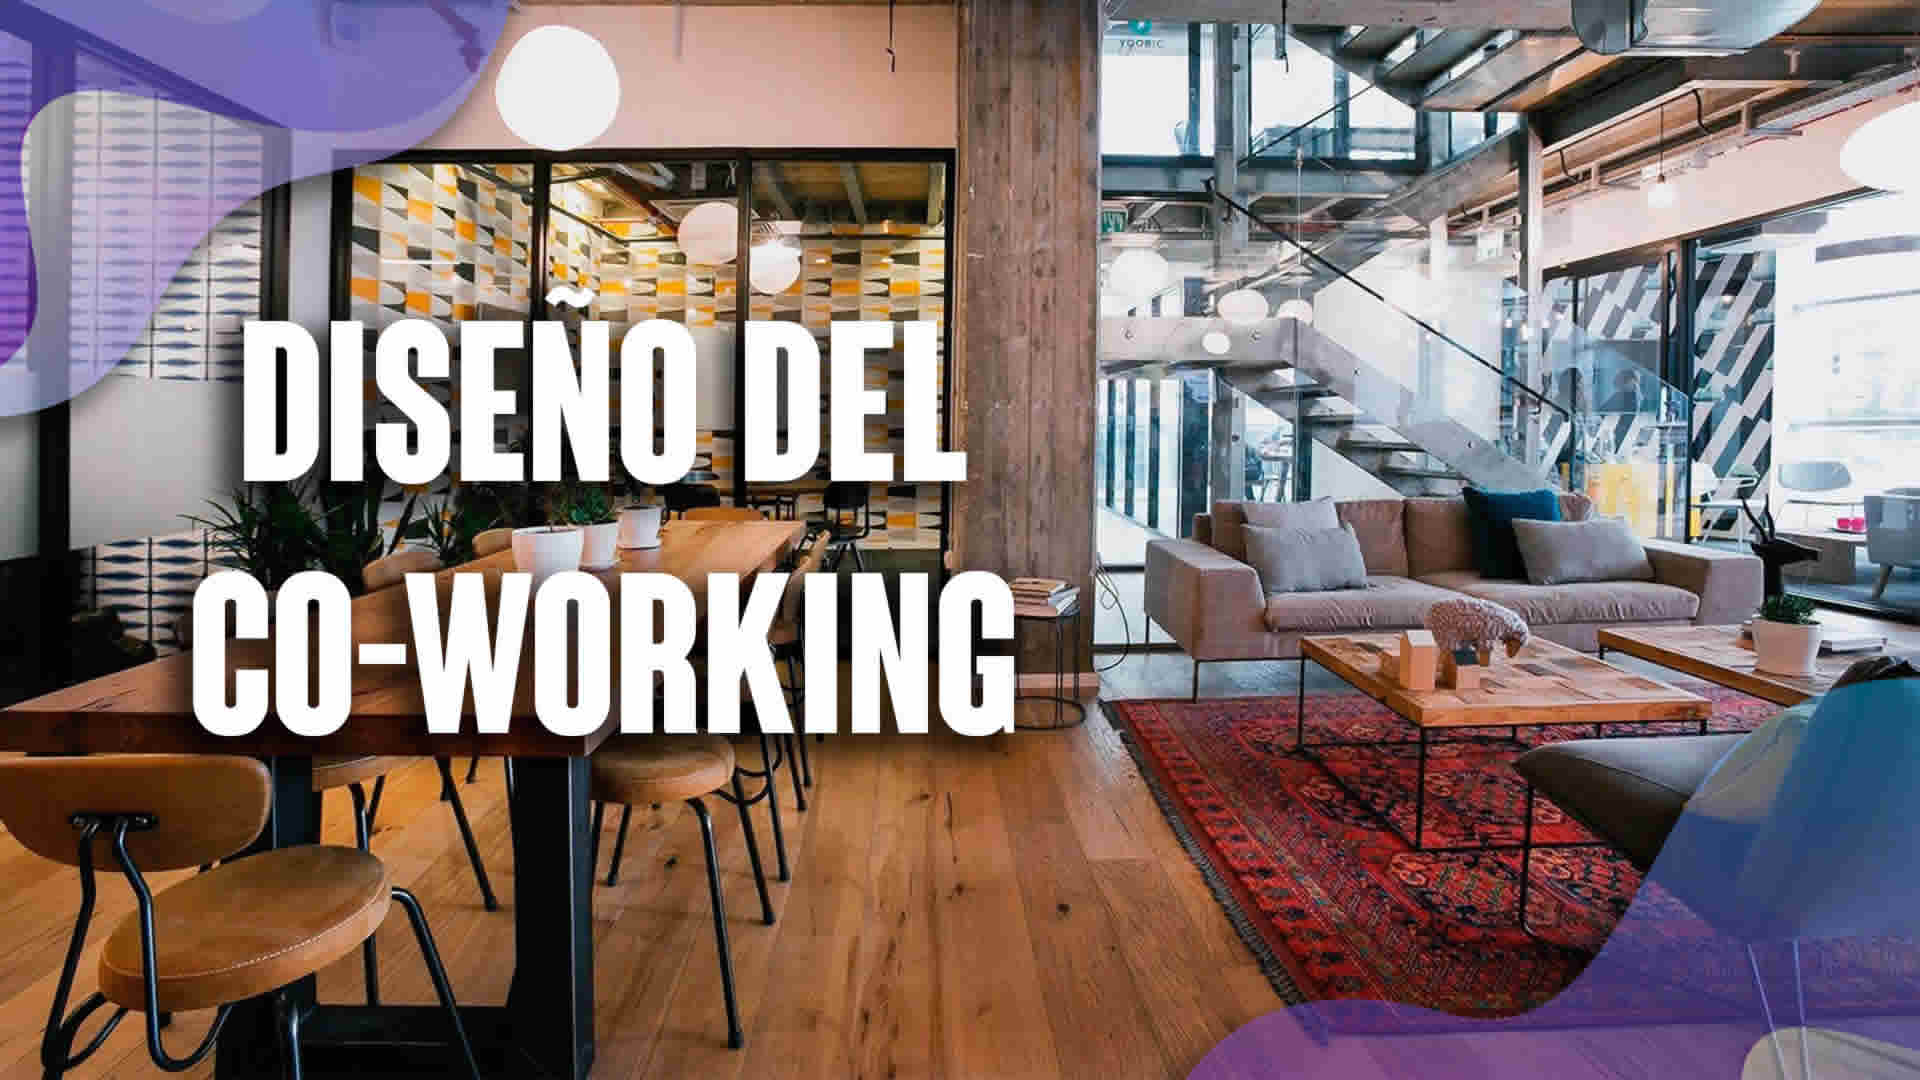 Diseño del Co-working